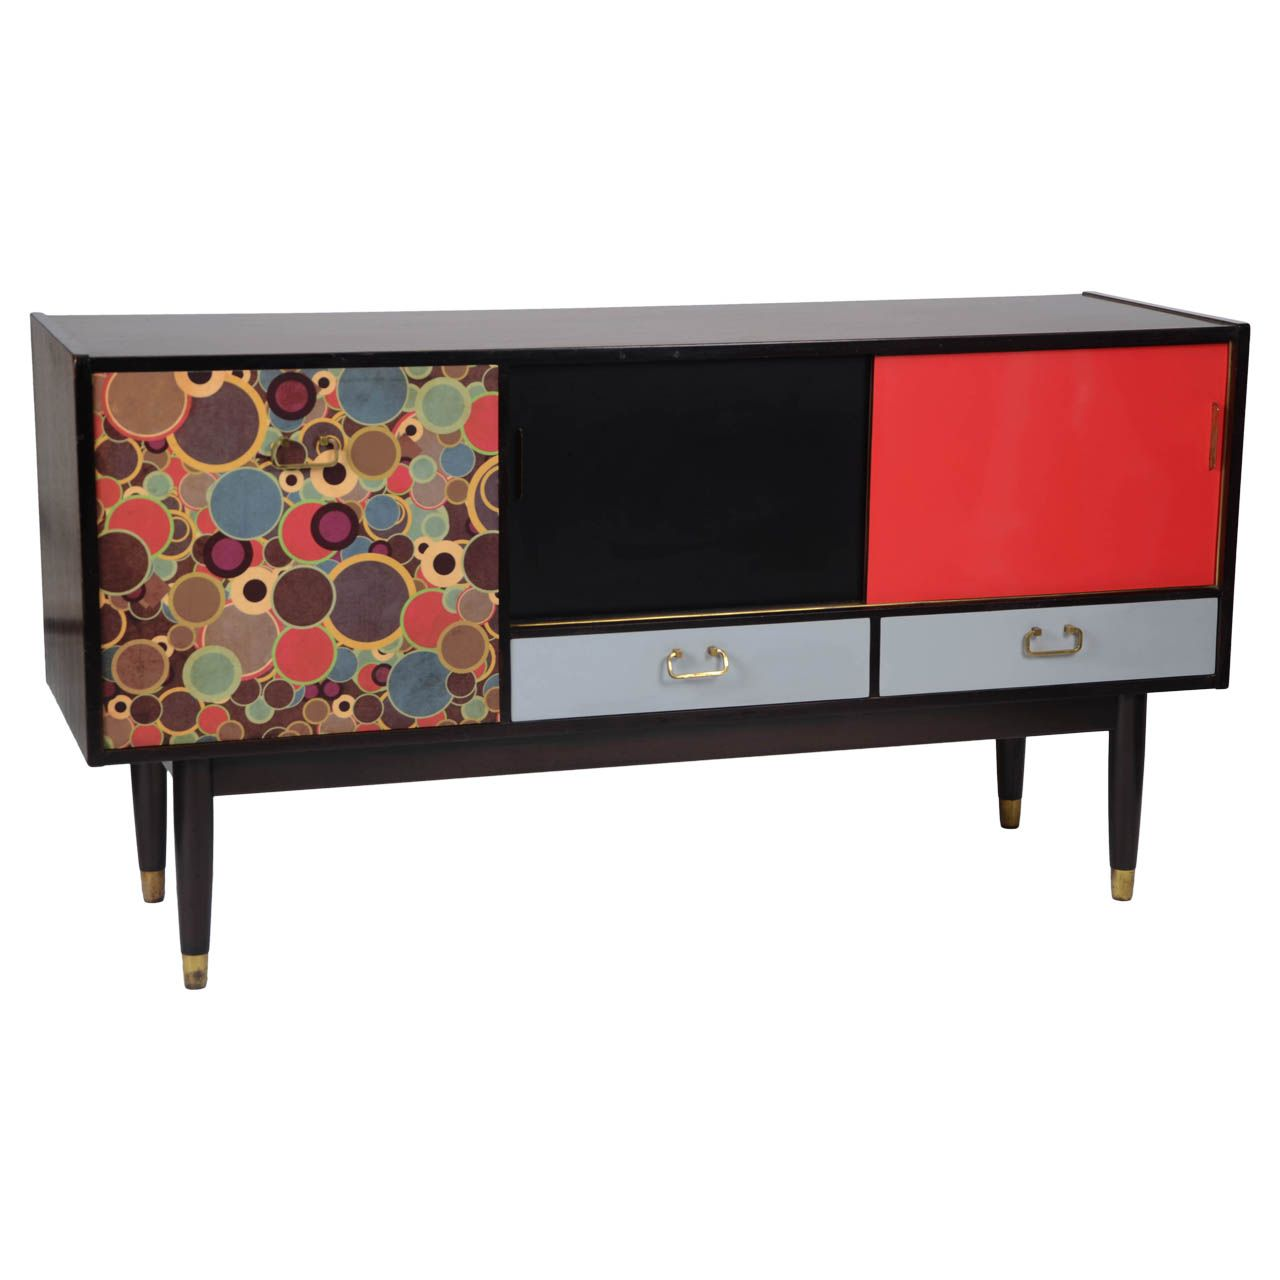 Teak And Ebonized Sideboard Featuring Colourlaminates and Graphic | From a unique collection of antique and modern sideboards at http://www.1stdibs.com/furniture/storage-case-pieces/sideboards/